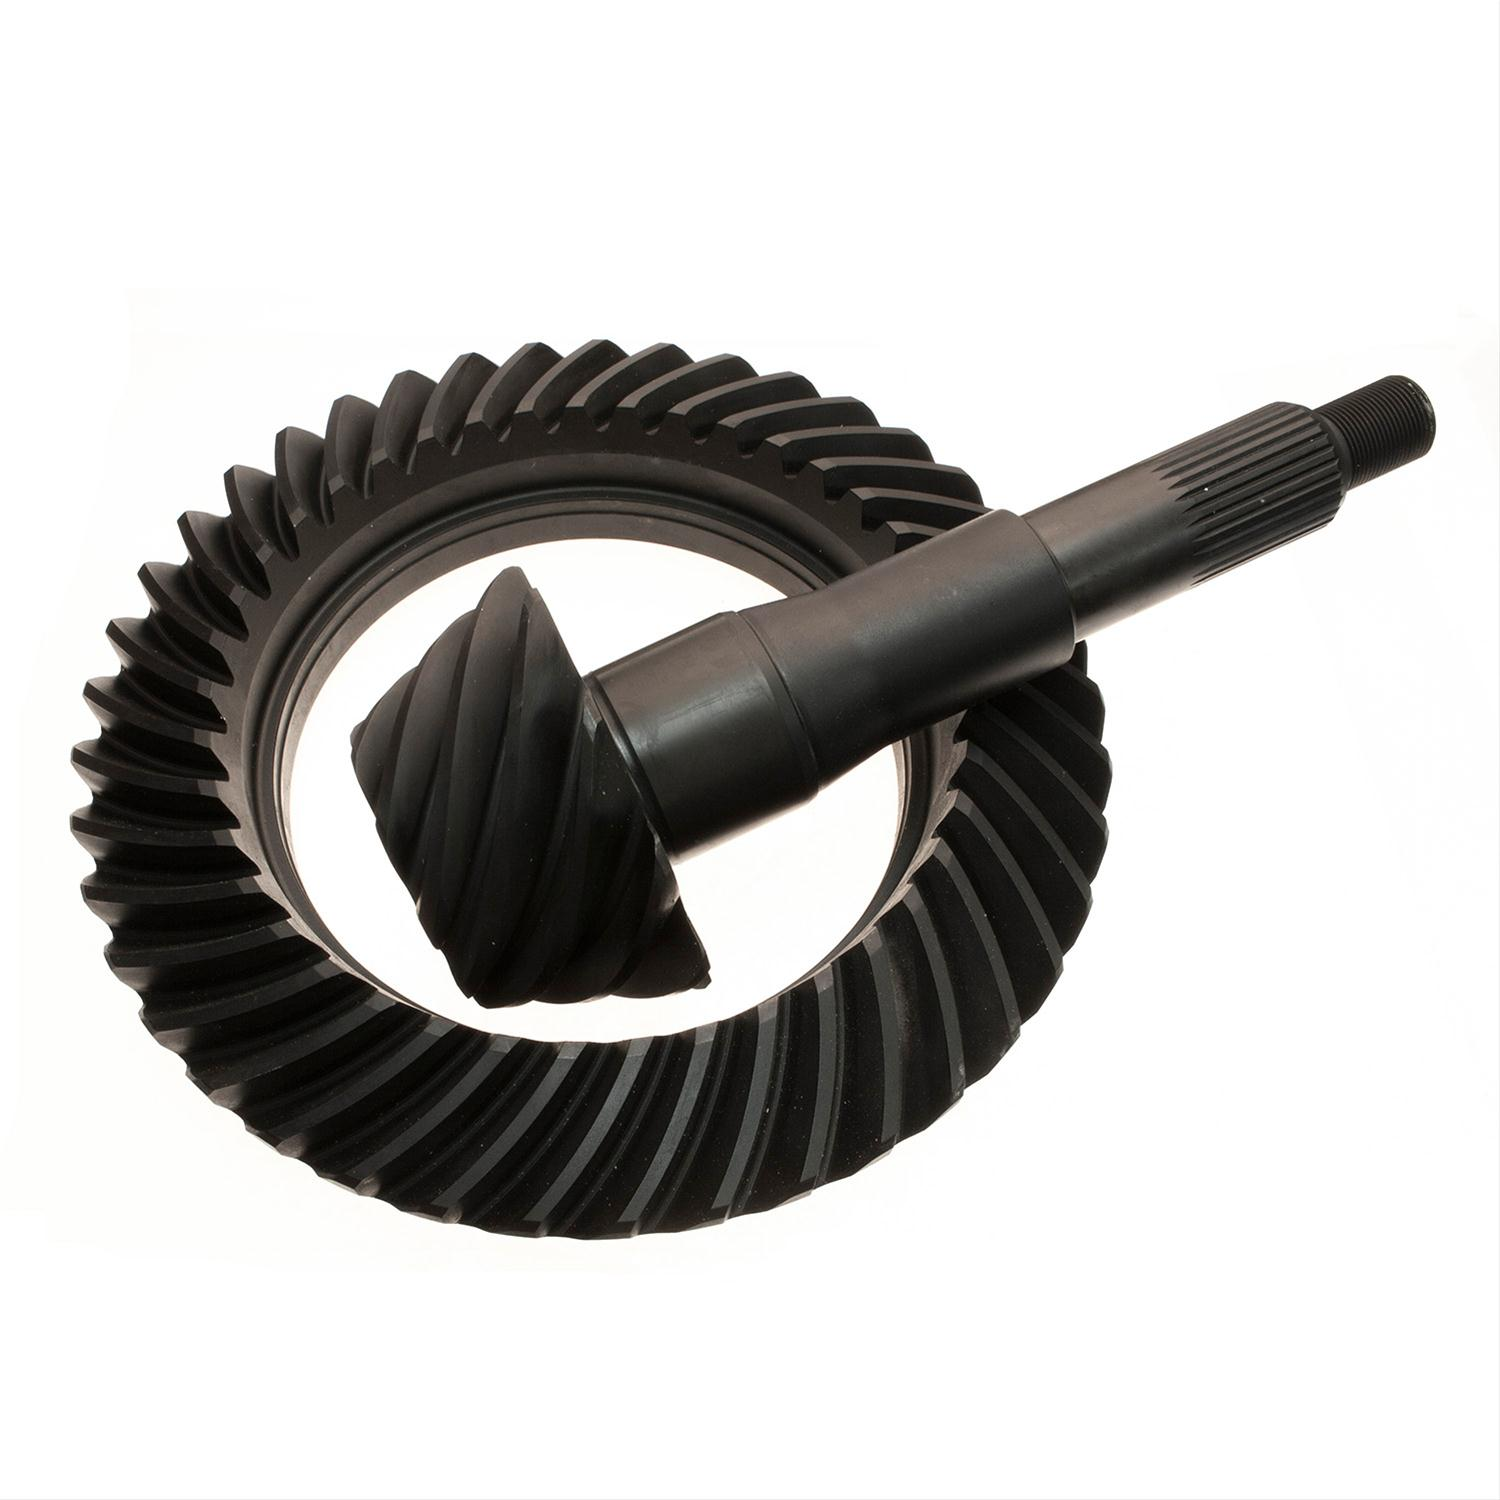 Motive Gear F10 25 410l Gear Ring And Pinion 4 101 Ratio